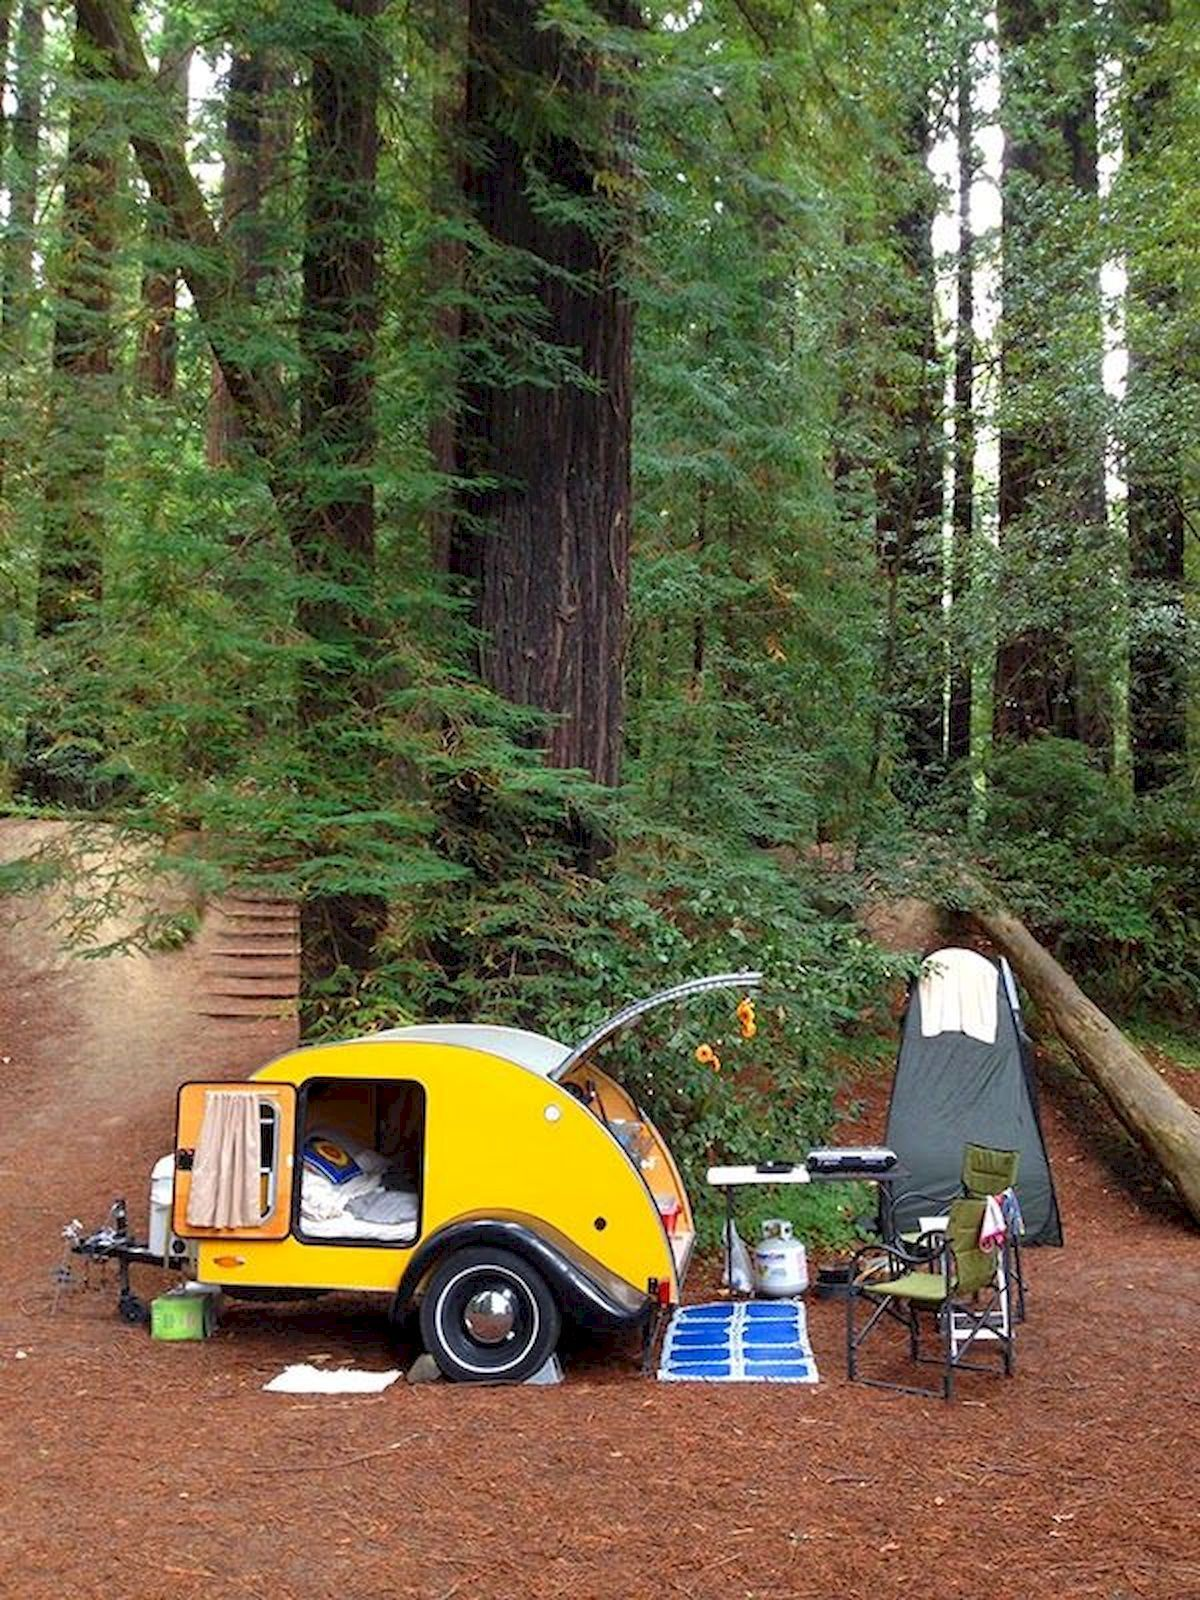 13 Fantastic Teardrop Camper Trailer Design Ideas For Nice Camping